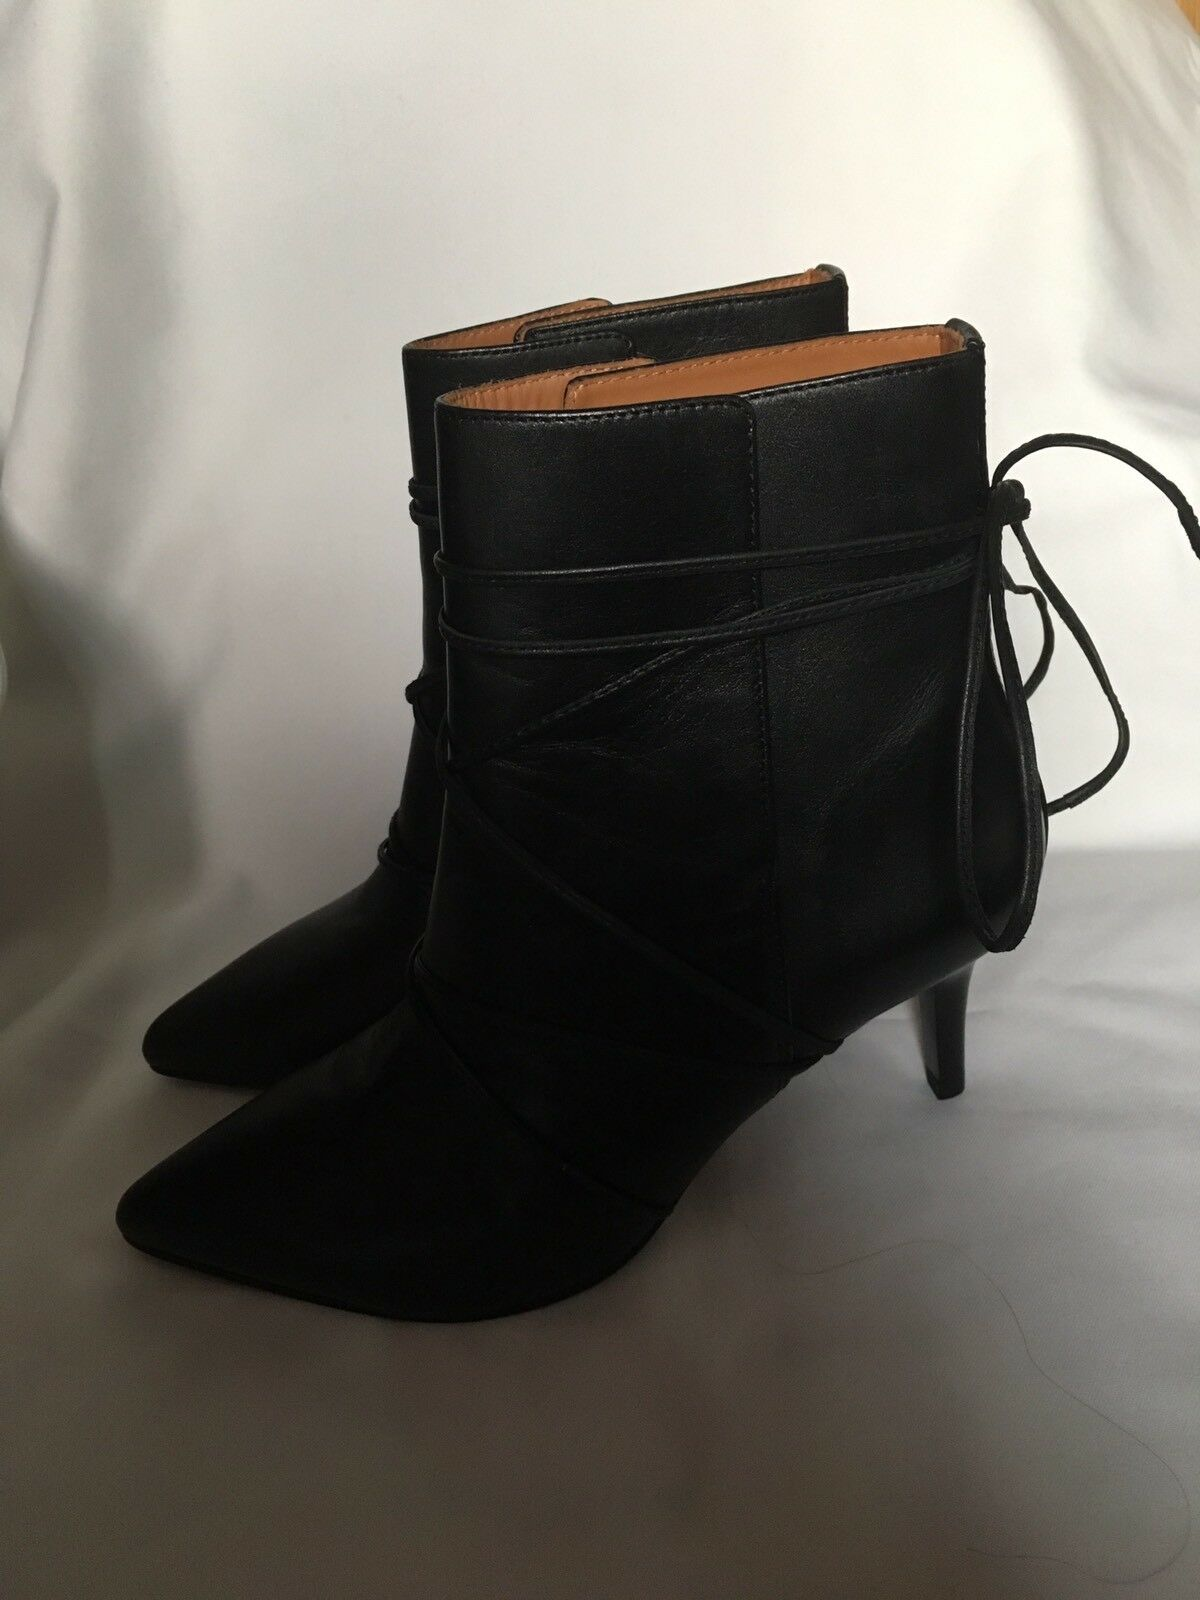 & Other Stories Black Leather Ankle Boot With Medium  Heel And Strap Size UK 4